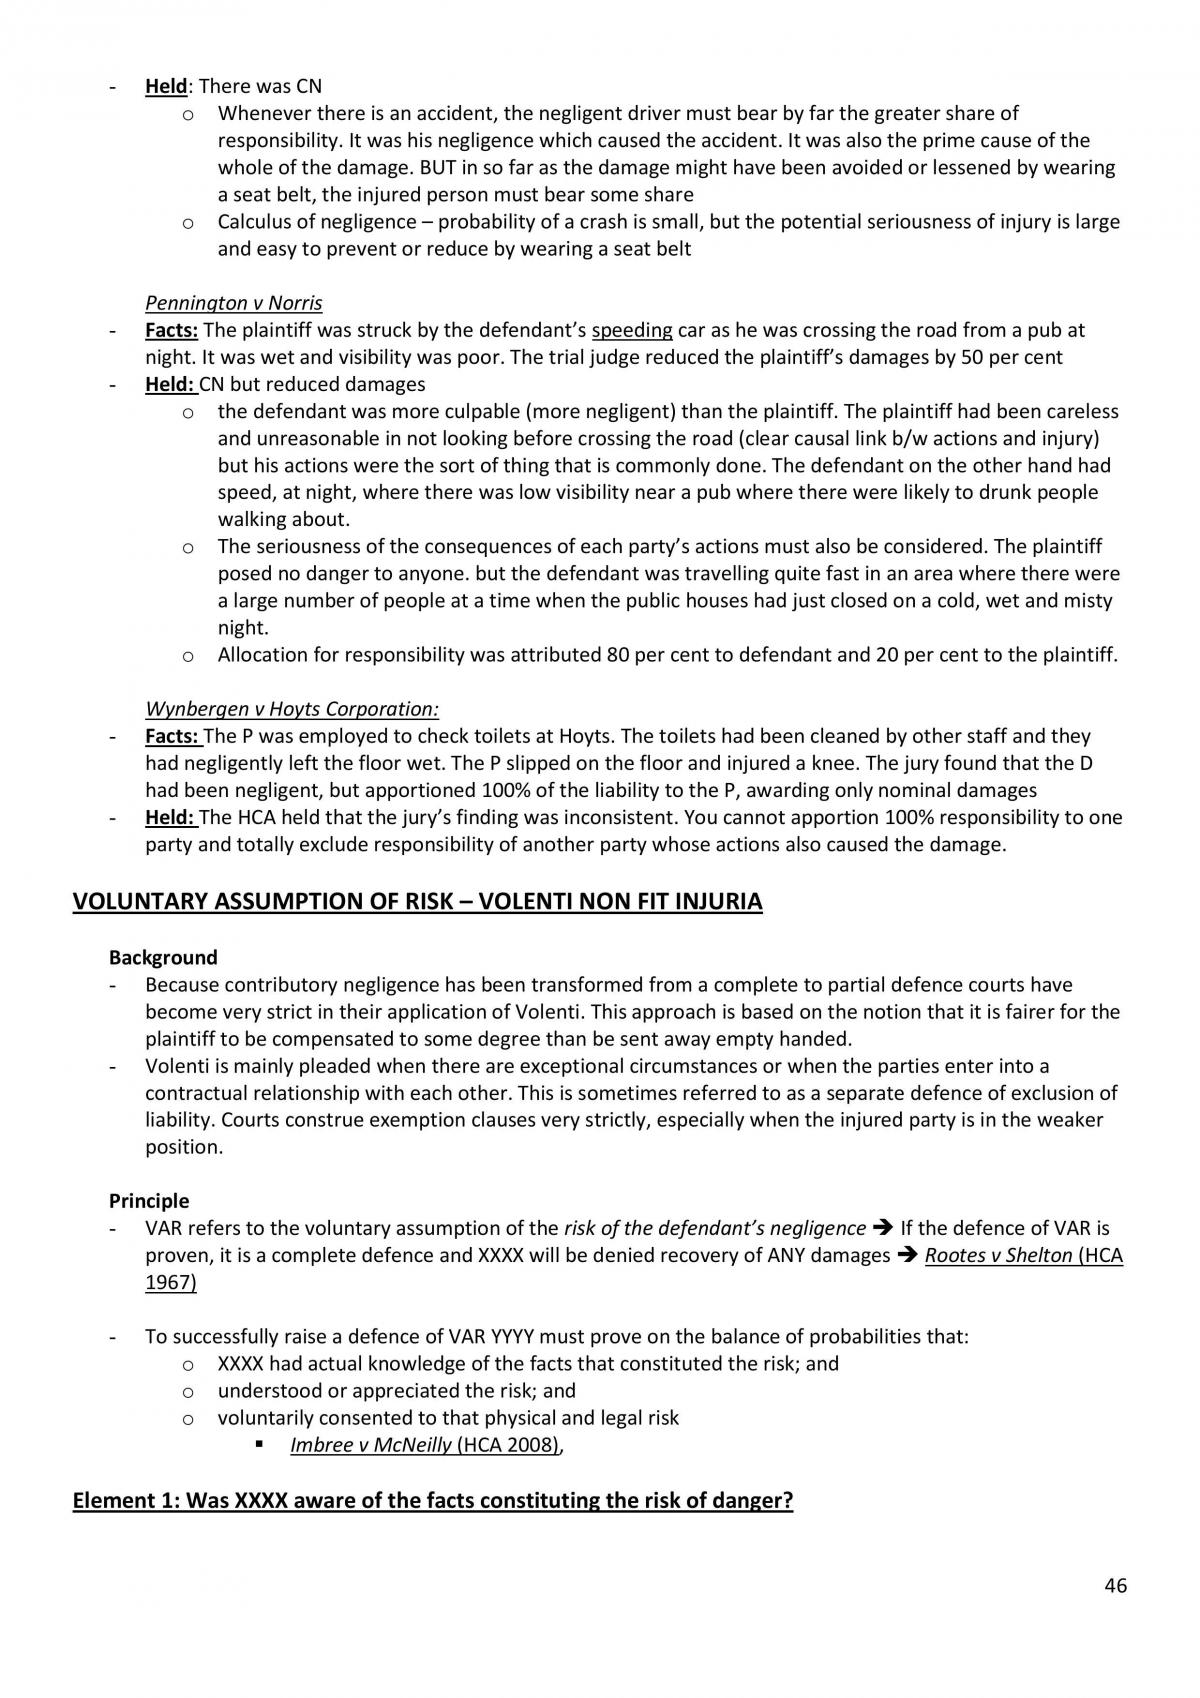 Torts 1 Notes  - Page 46